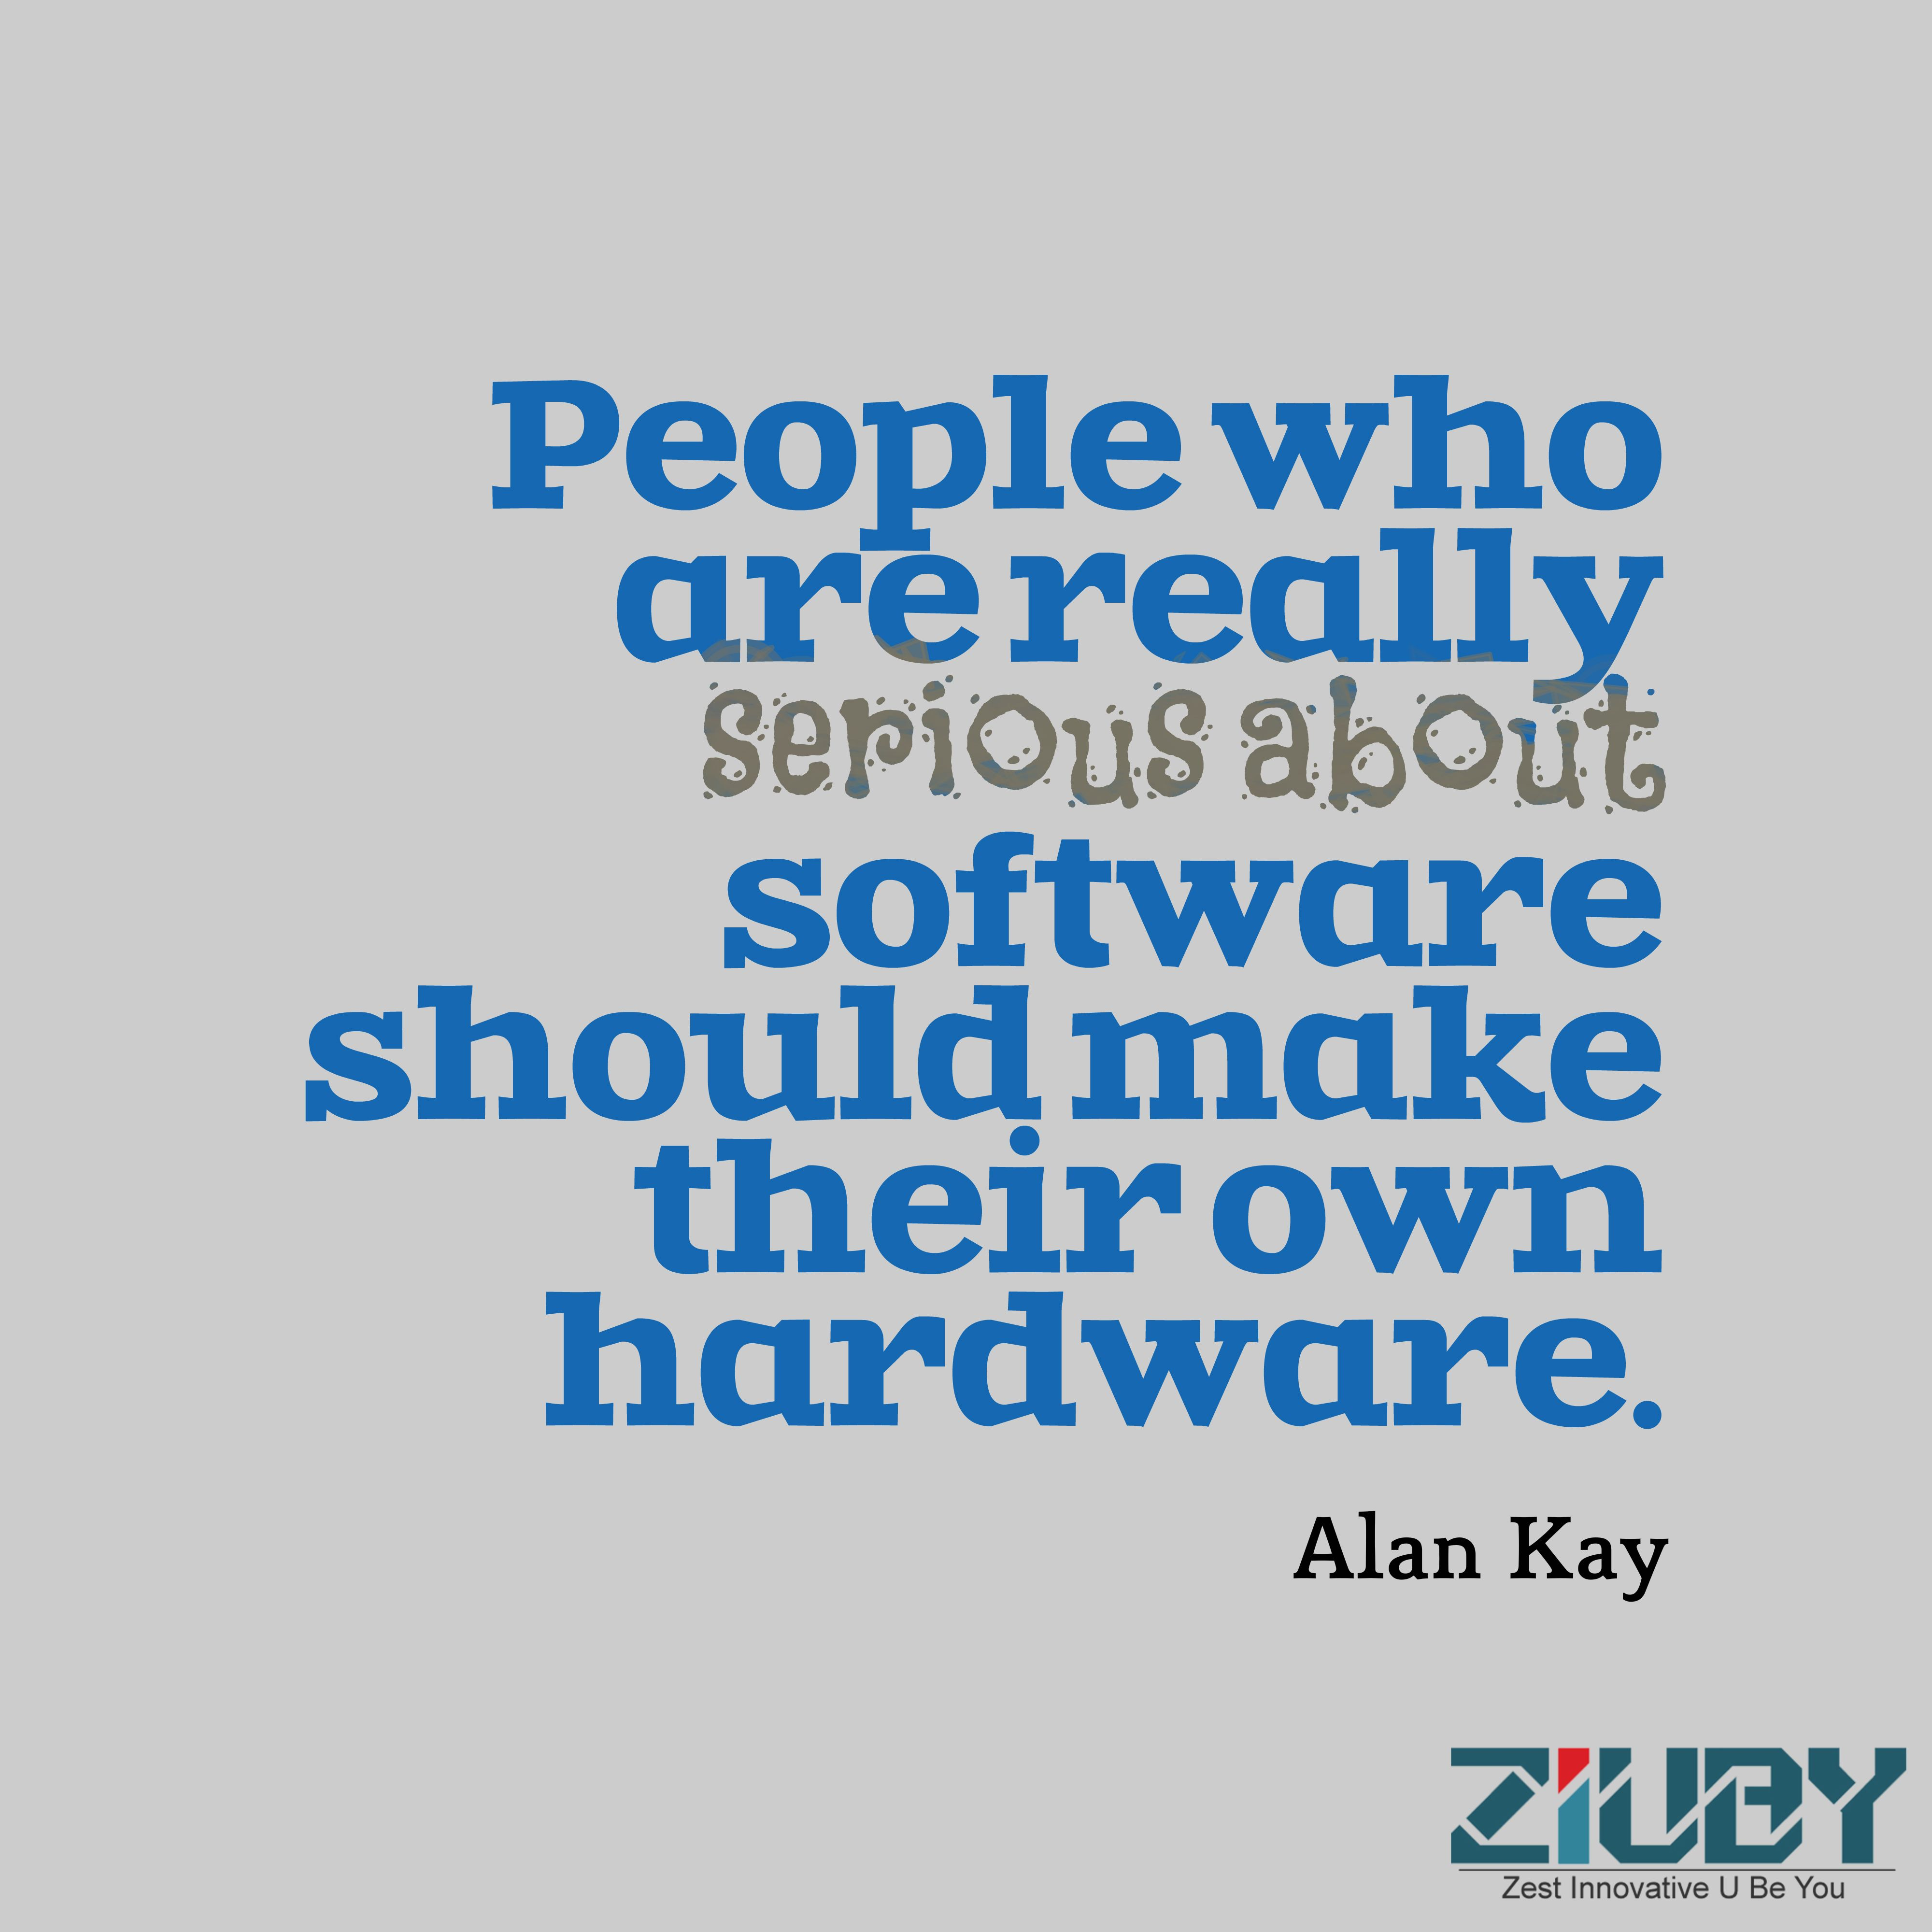 Web Development Quotes Ziuby Quotes Httpwww.ziuby  Computer  Softwares